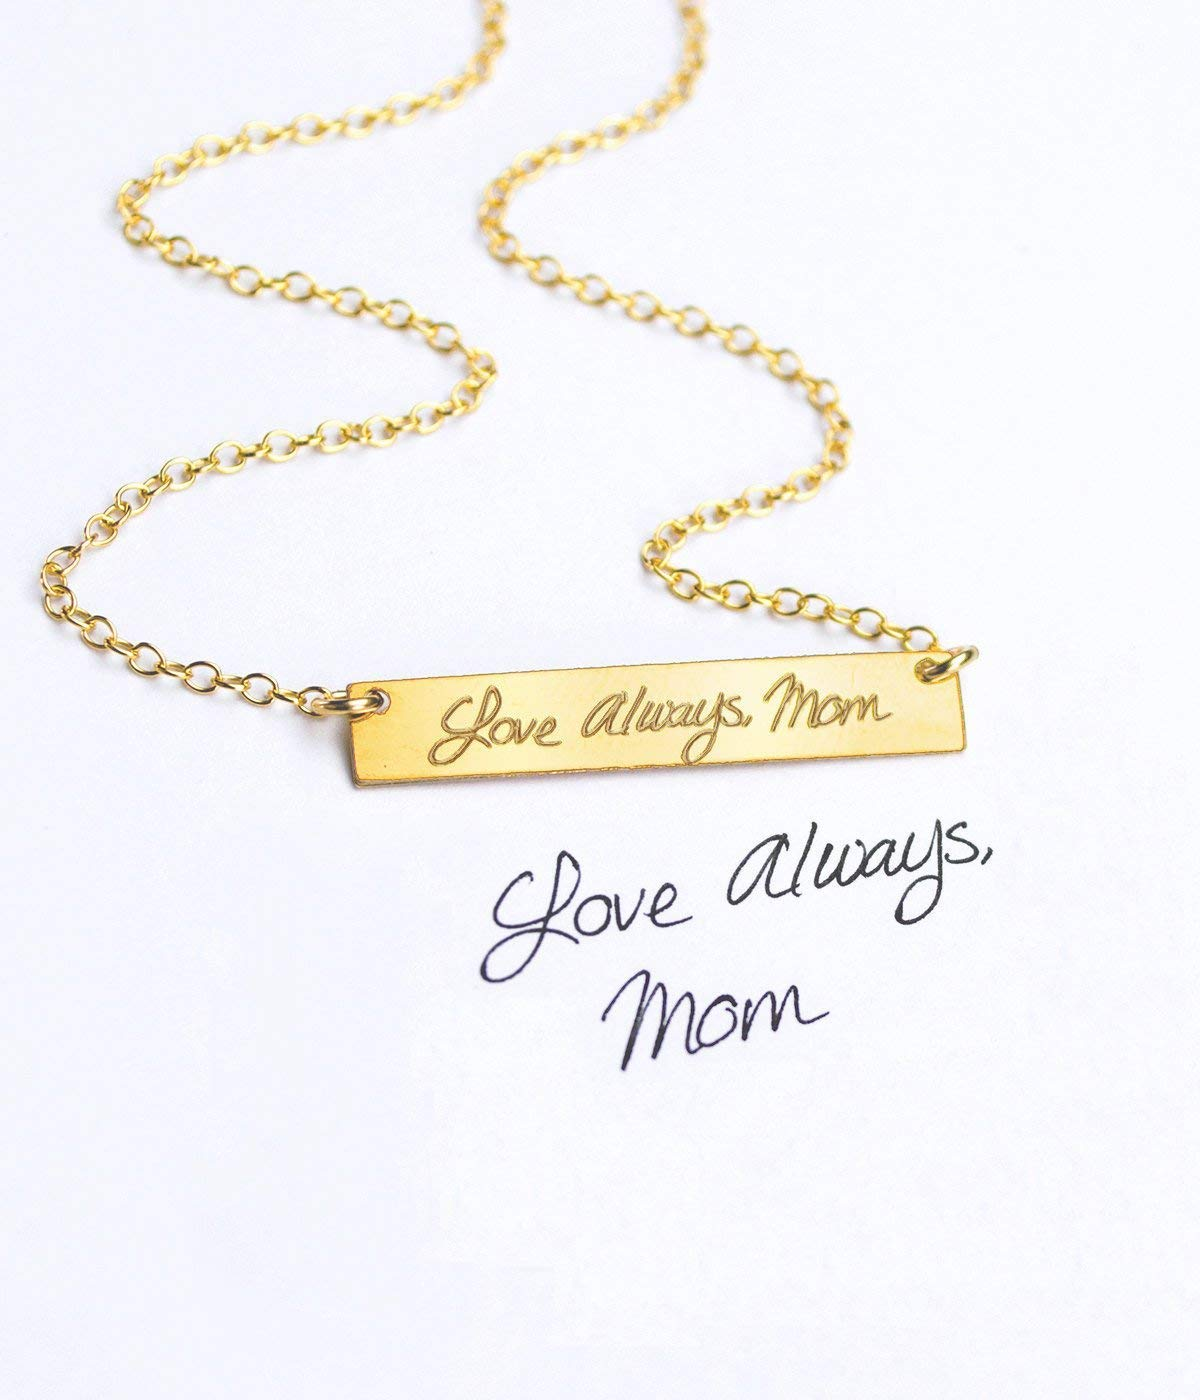 5f6a424d744c8 Actual hand writing Necklace, Gold Filled, Rose Gold Filled or Sterling  Silver Bar Necklace, Custom Handwriting Necklace, 5x30mm Engraved Bar